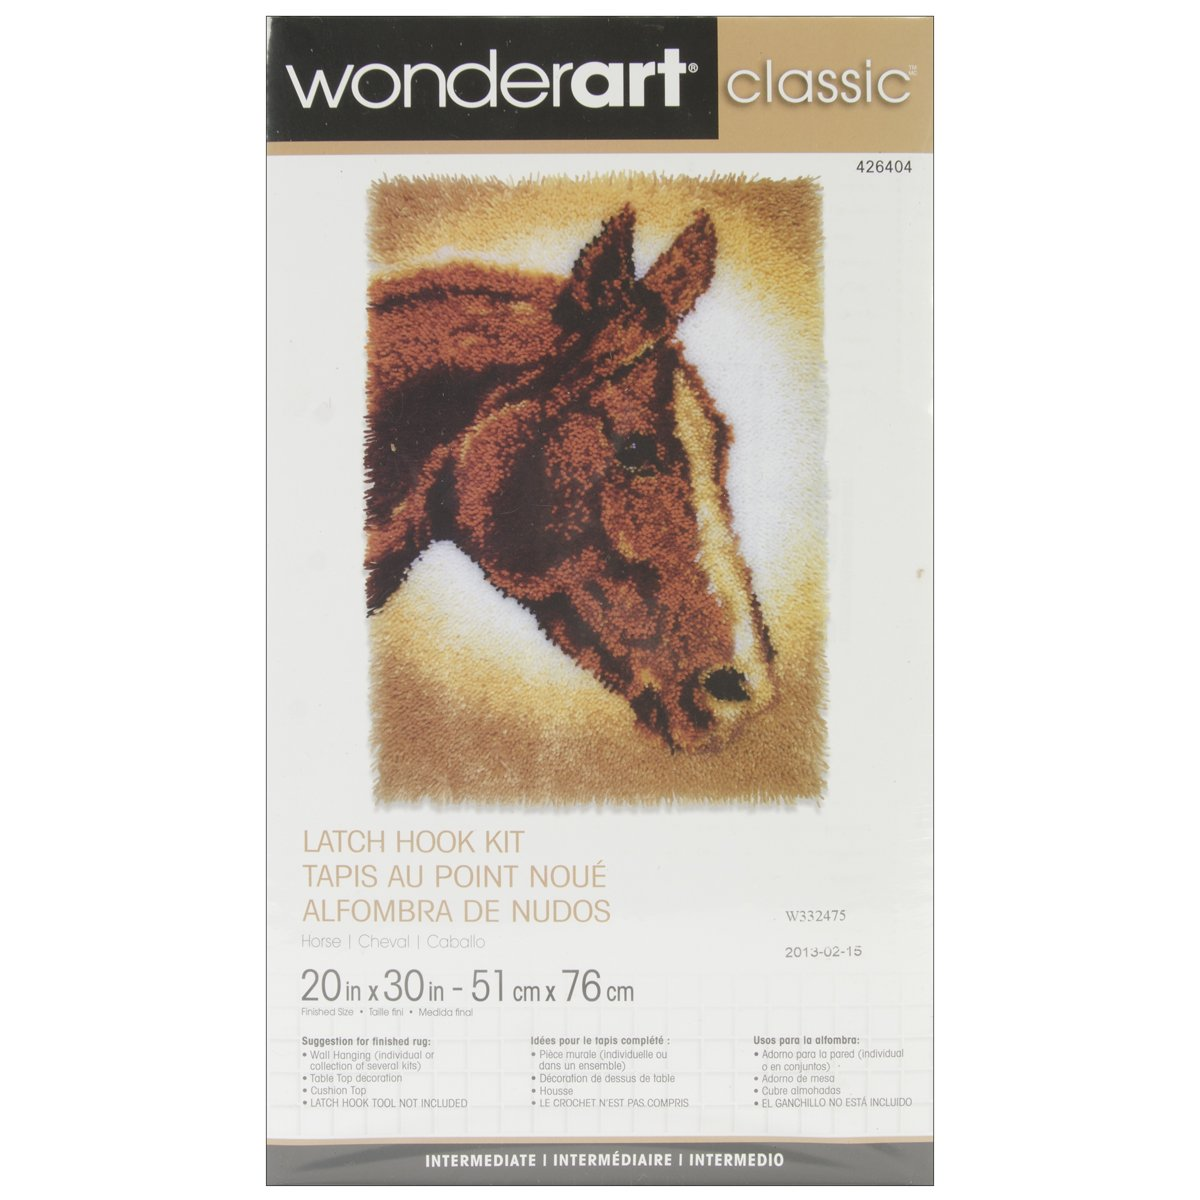 Wonderart Classics Country Harvest Latch Hook Kit, 20 X 30 20 X 30 Spinrite 426405